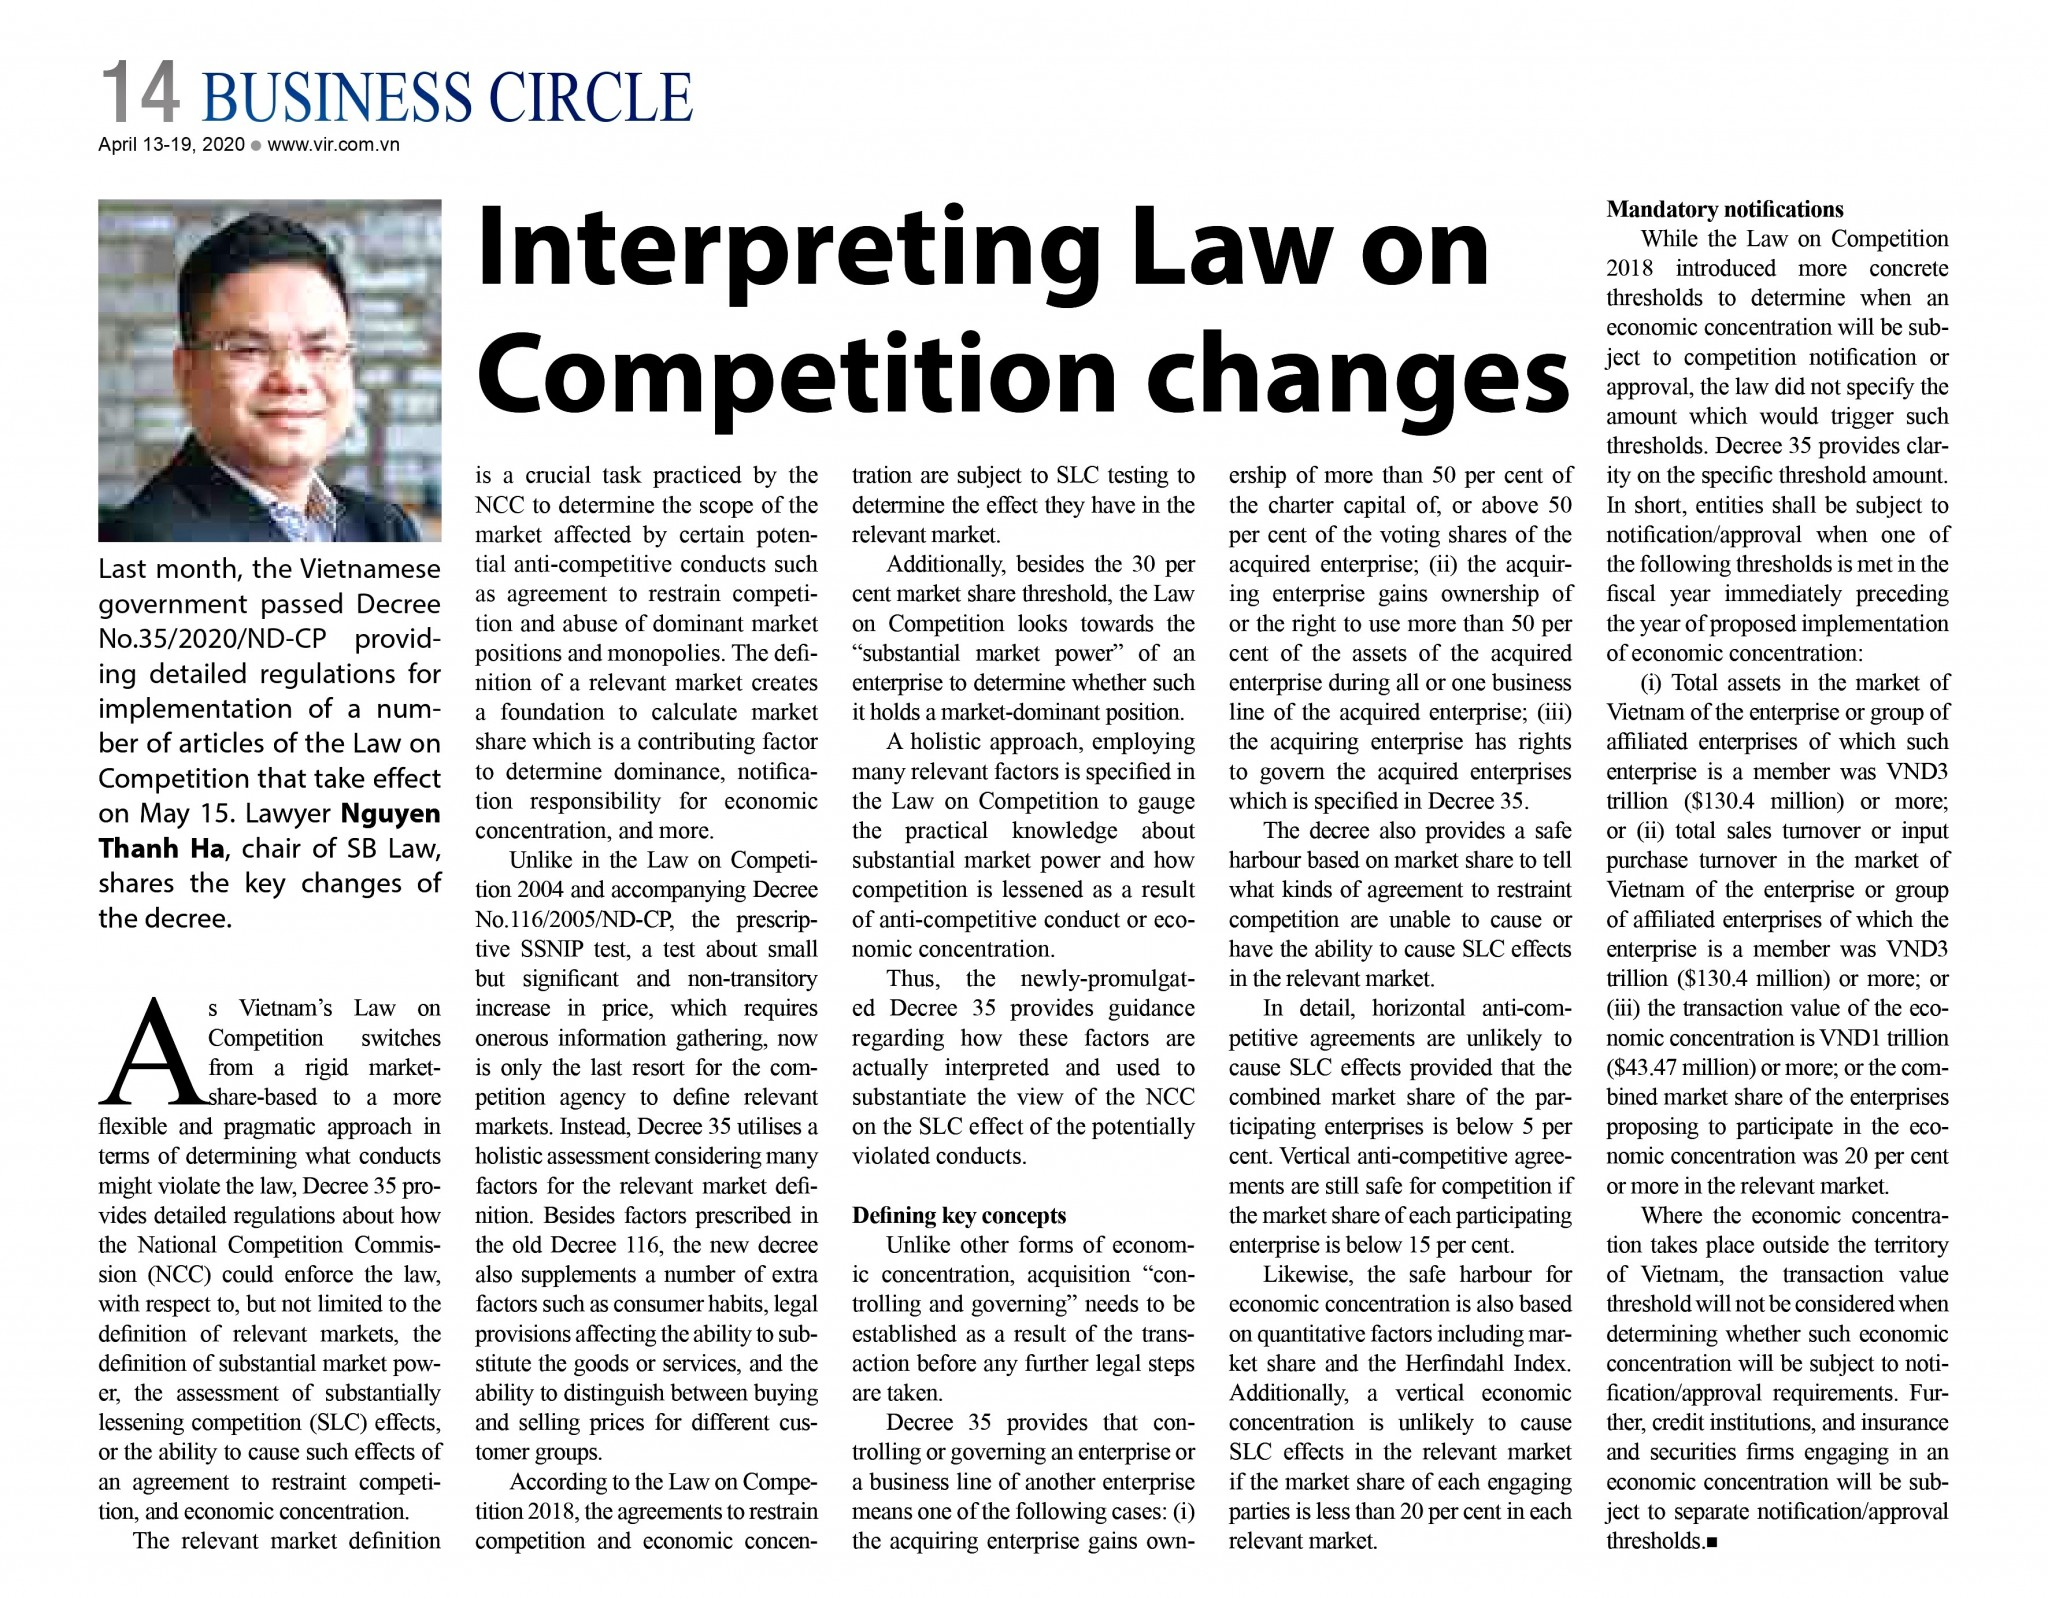 INTERPRETING LAW on competition CHANGES.